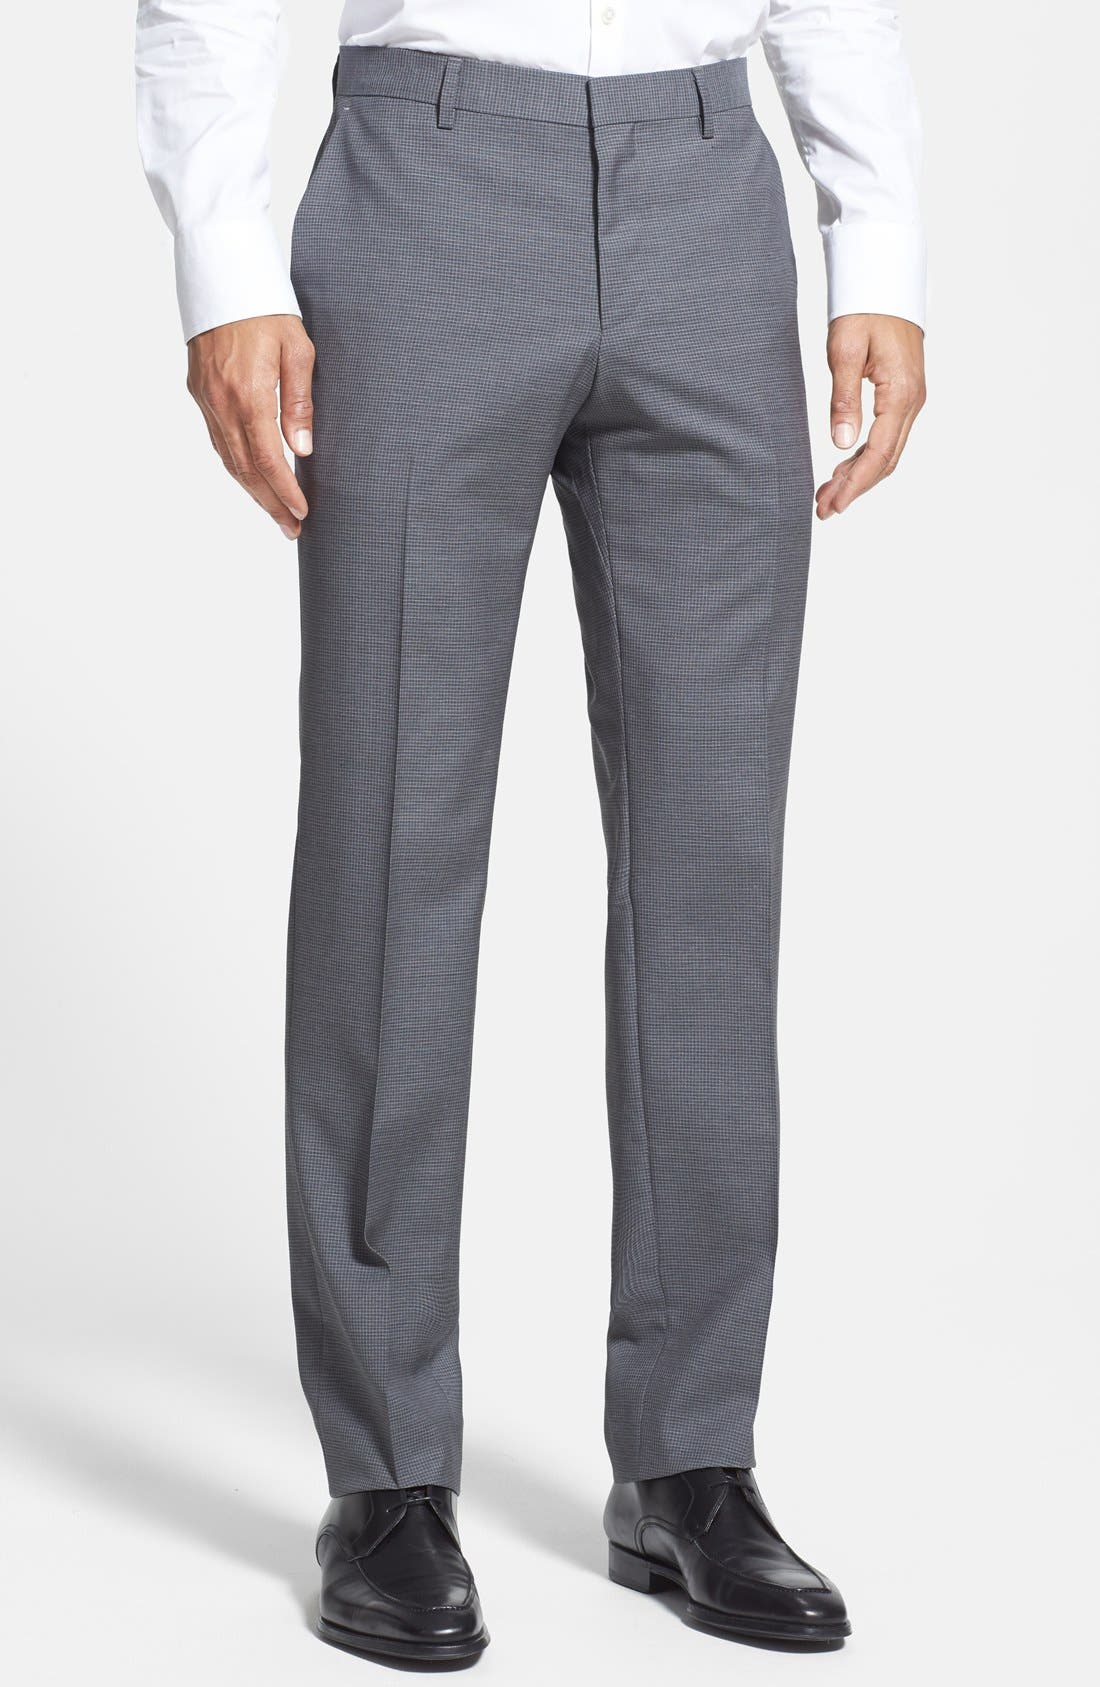 Alternate Image 1 Selected - BOSS HUGO BOSS 'Genesis' Patterned Flat Front Trousers